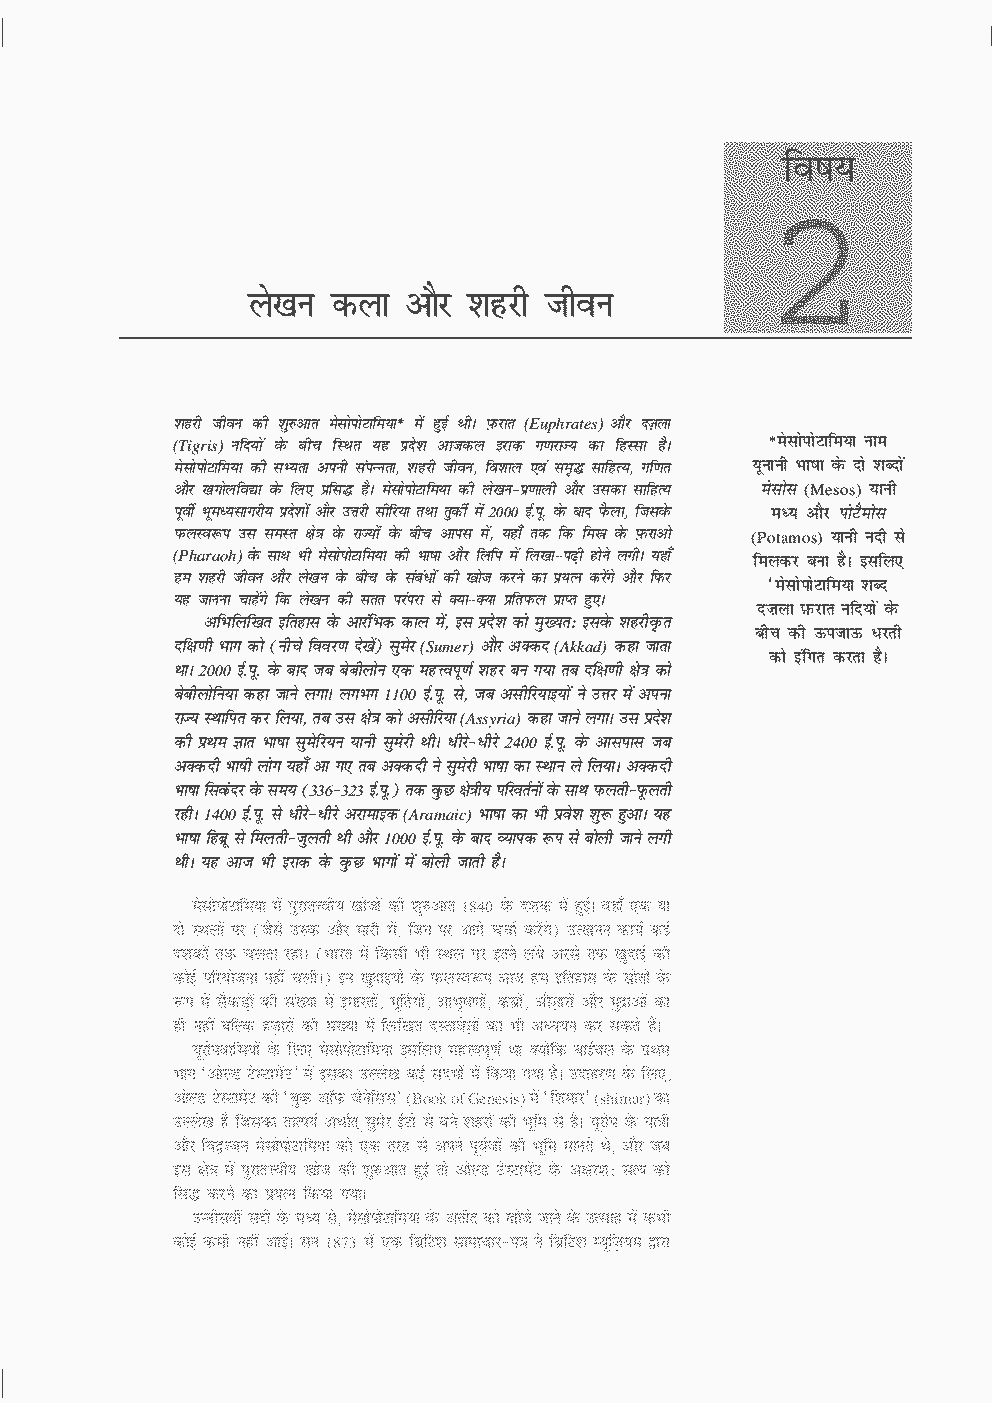 Books medium hindi ncert history pdf